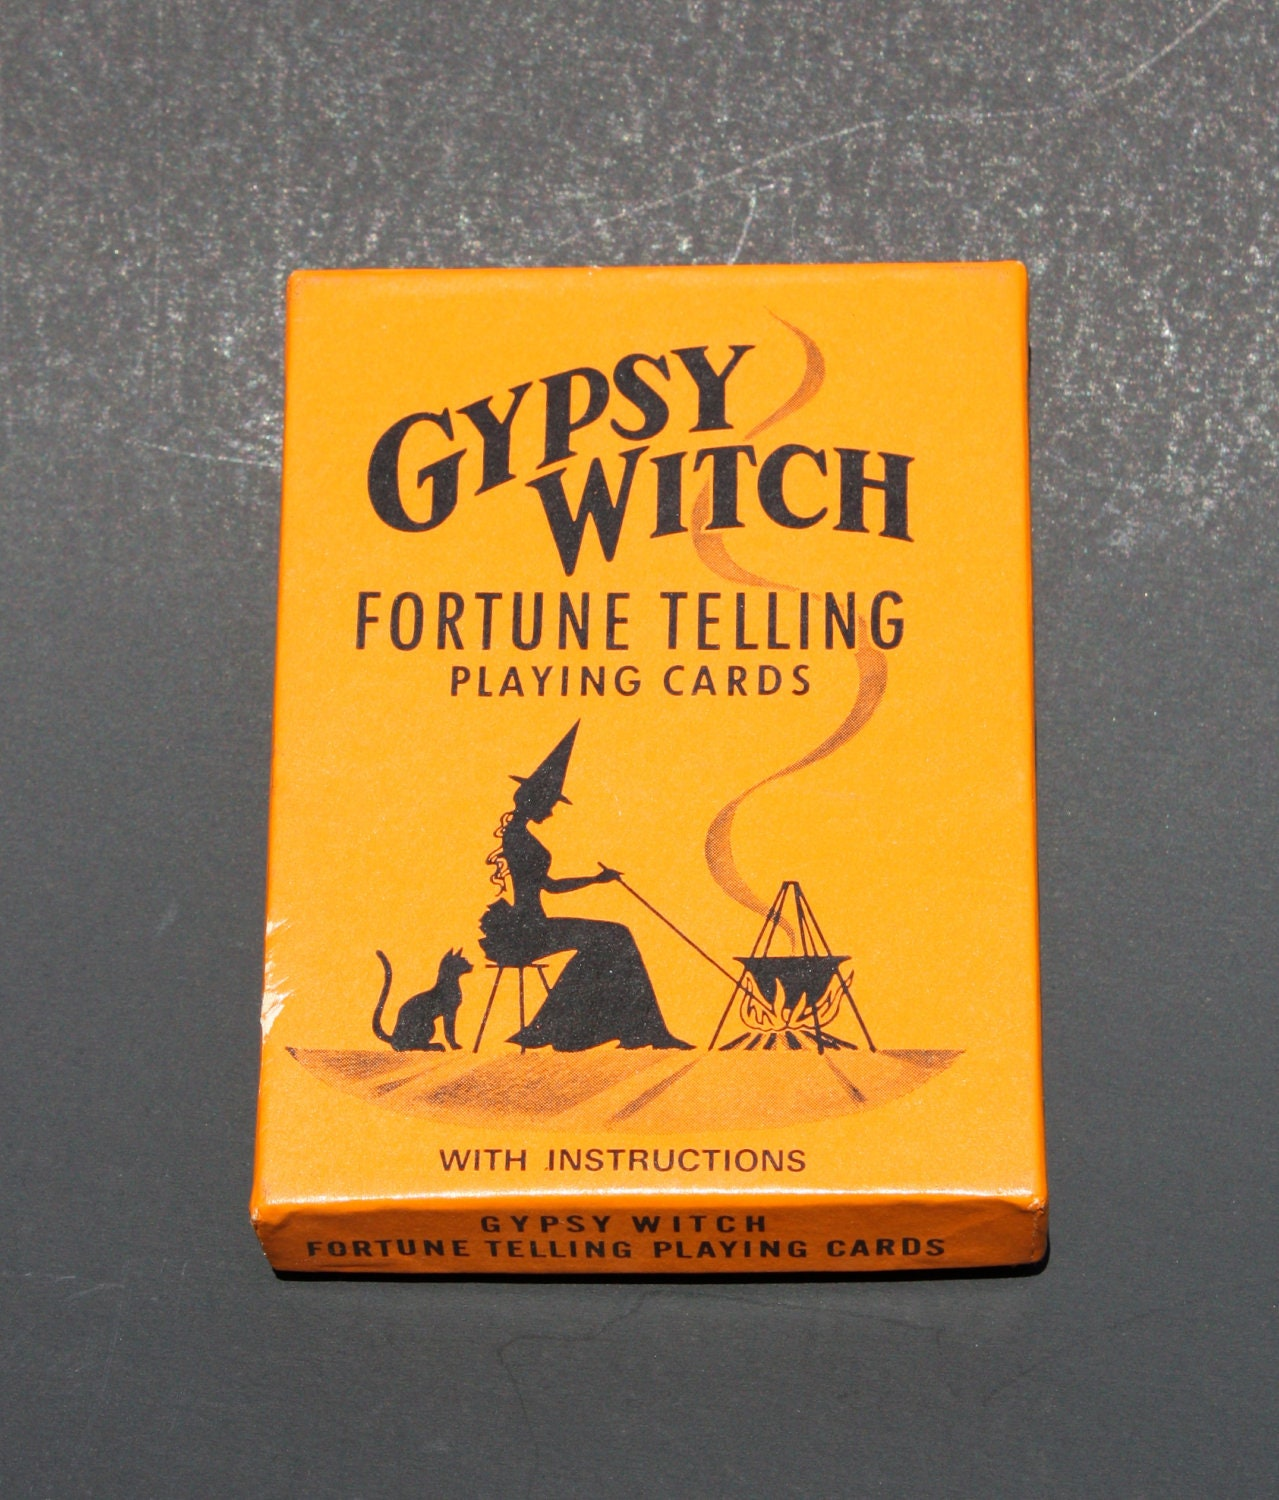 gypsy witch fortune telling cards instructions